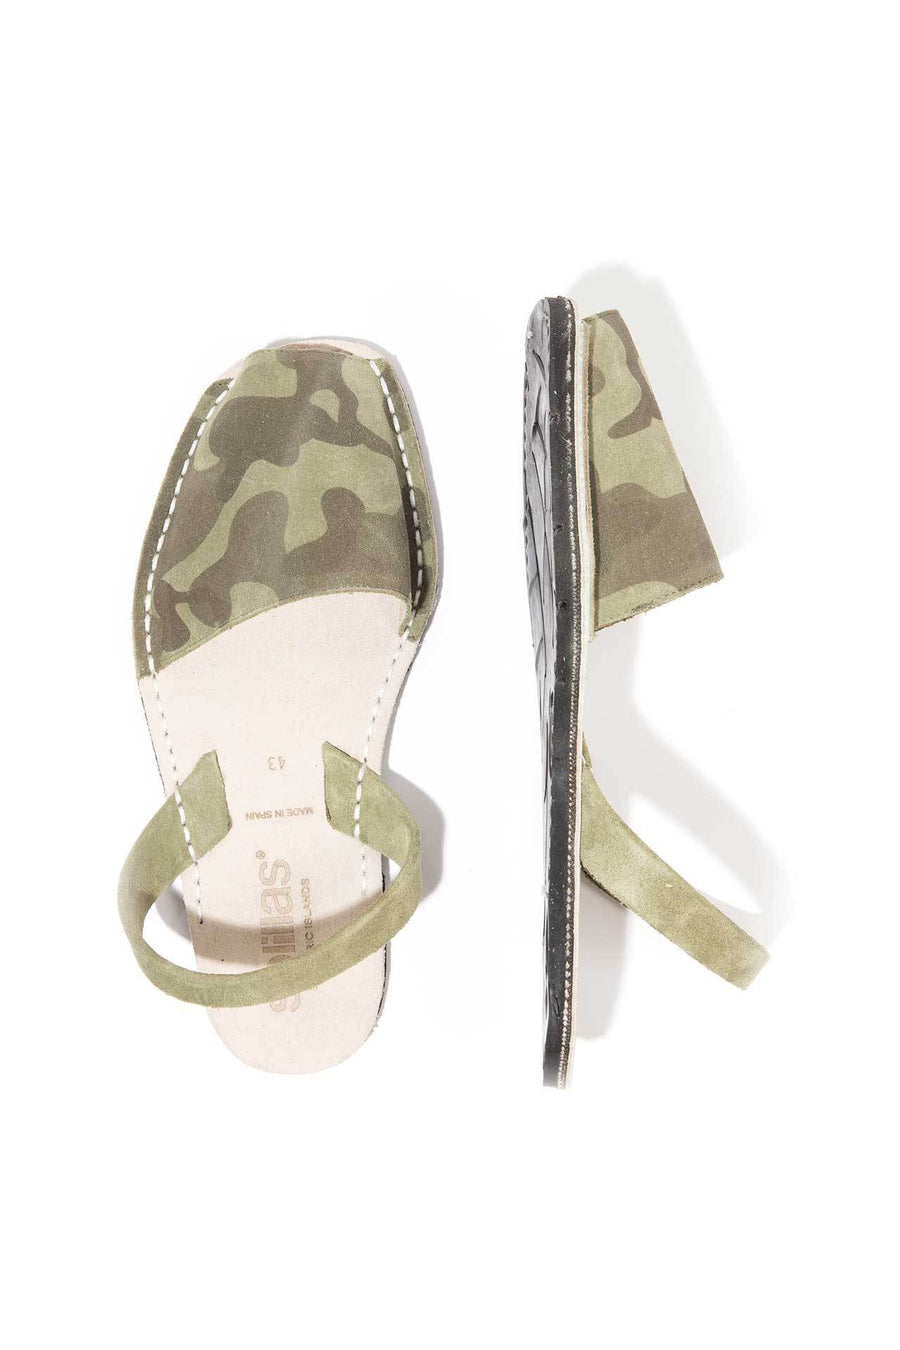 Khaki Camo - Camoflague Suede sandals